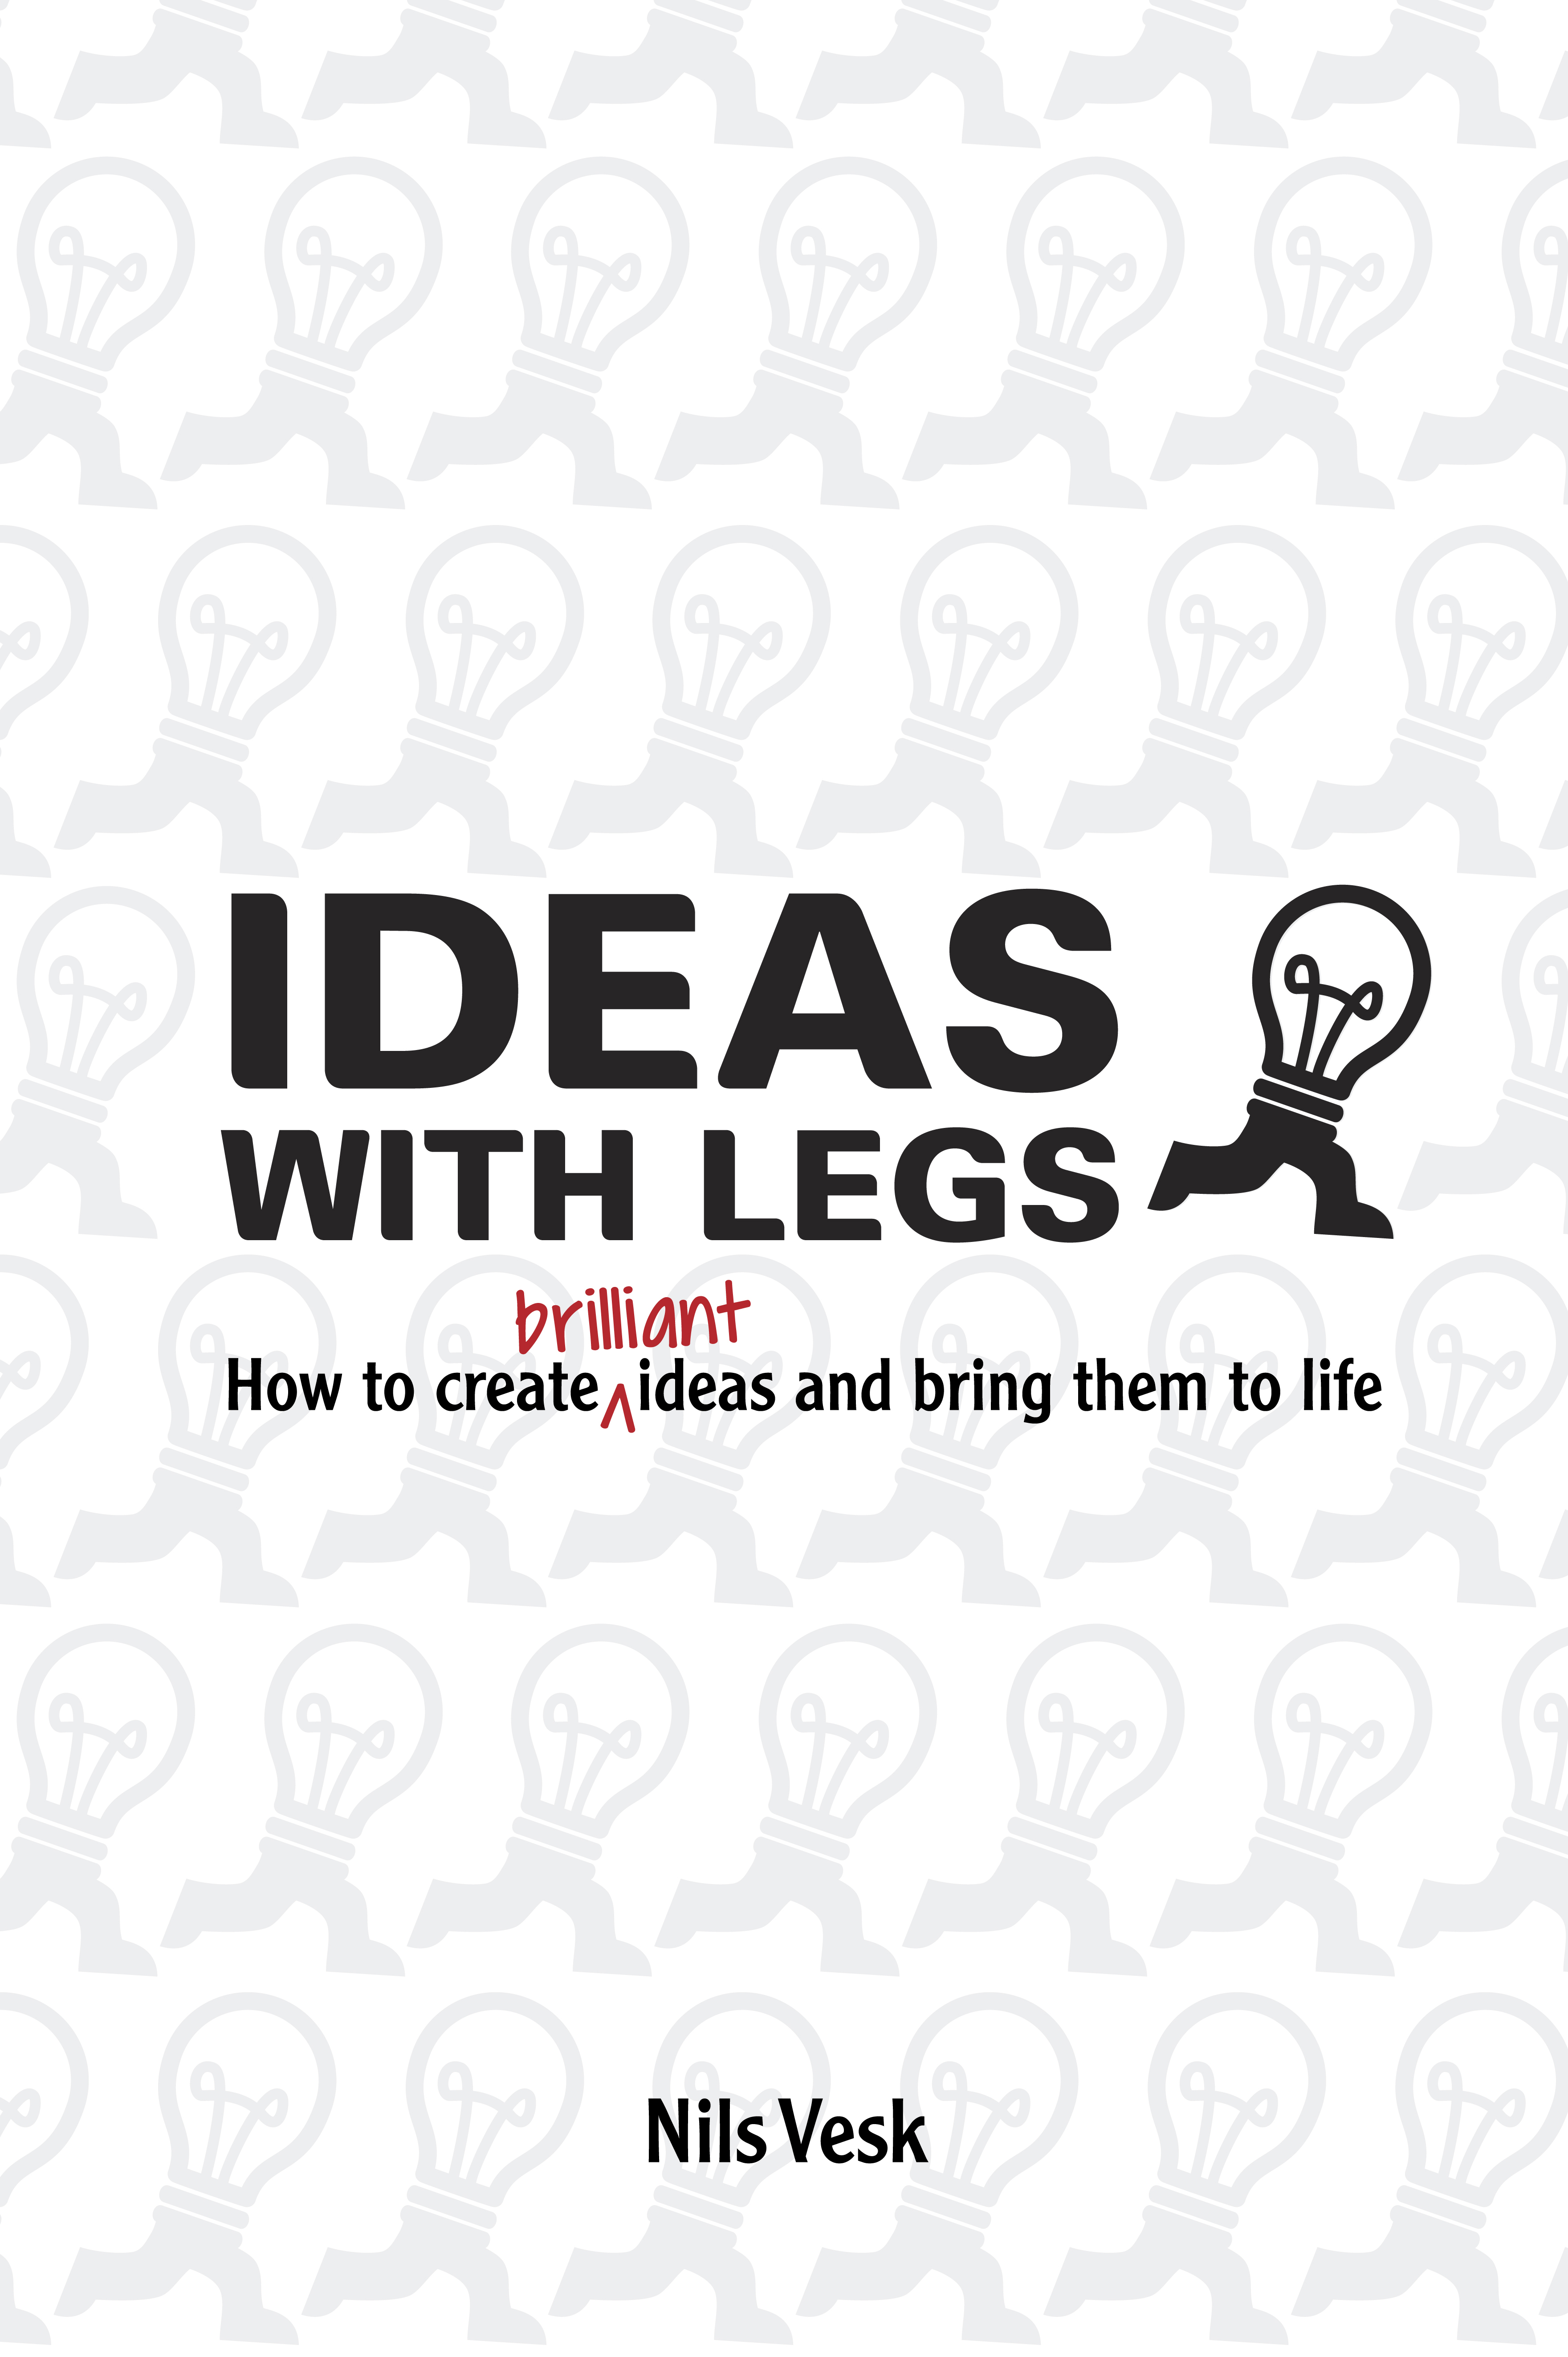 Ideas with legs: how to create brilliant ideas and bring them to life